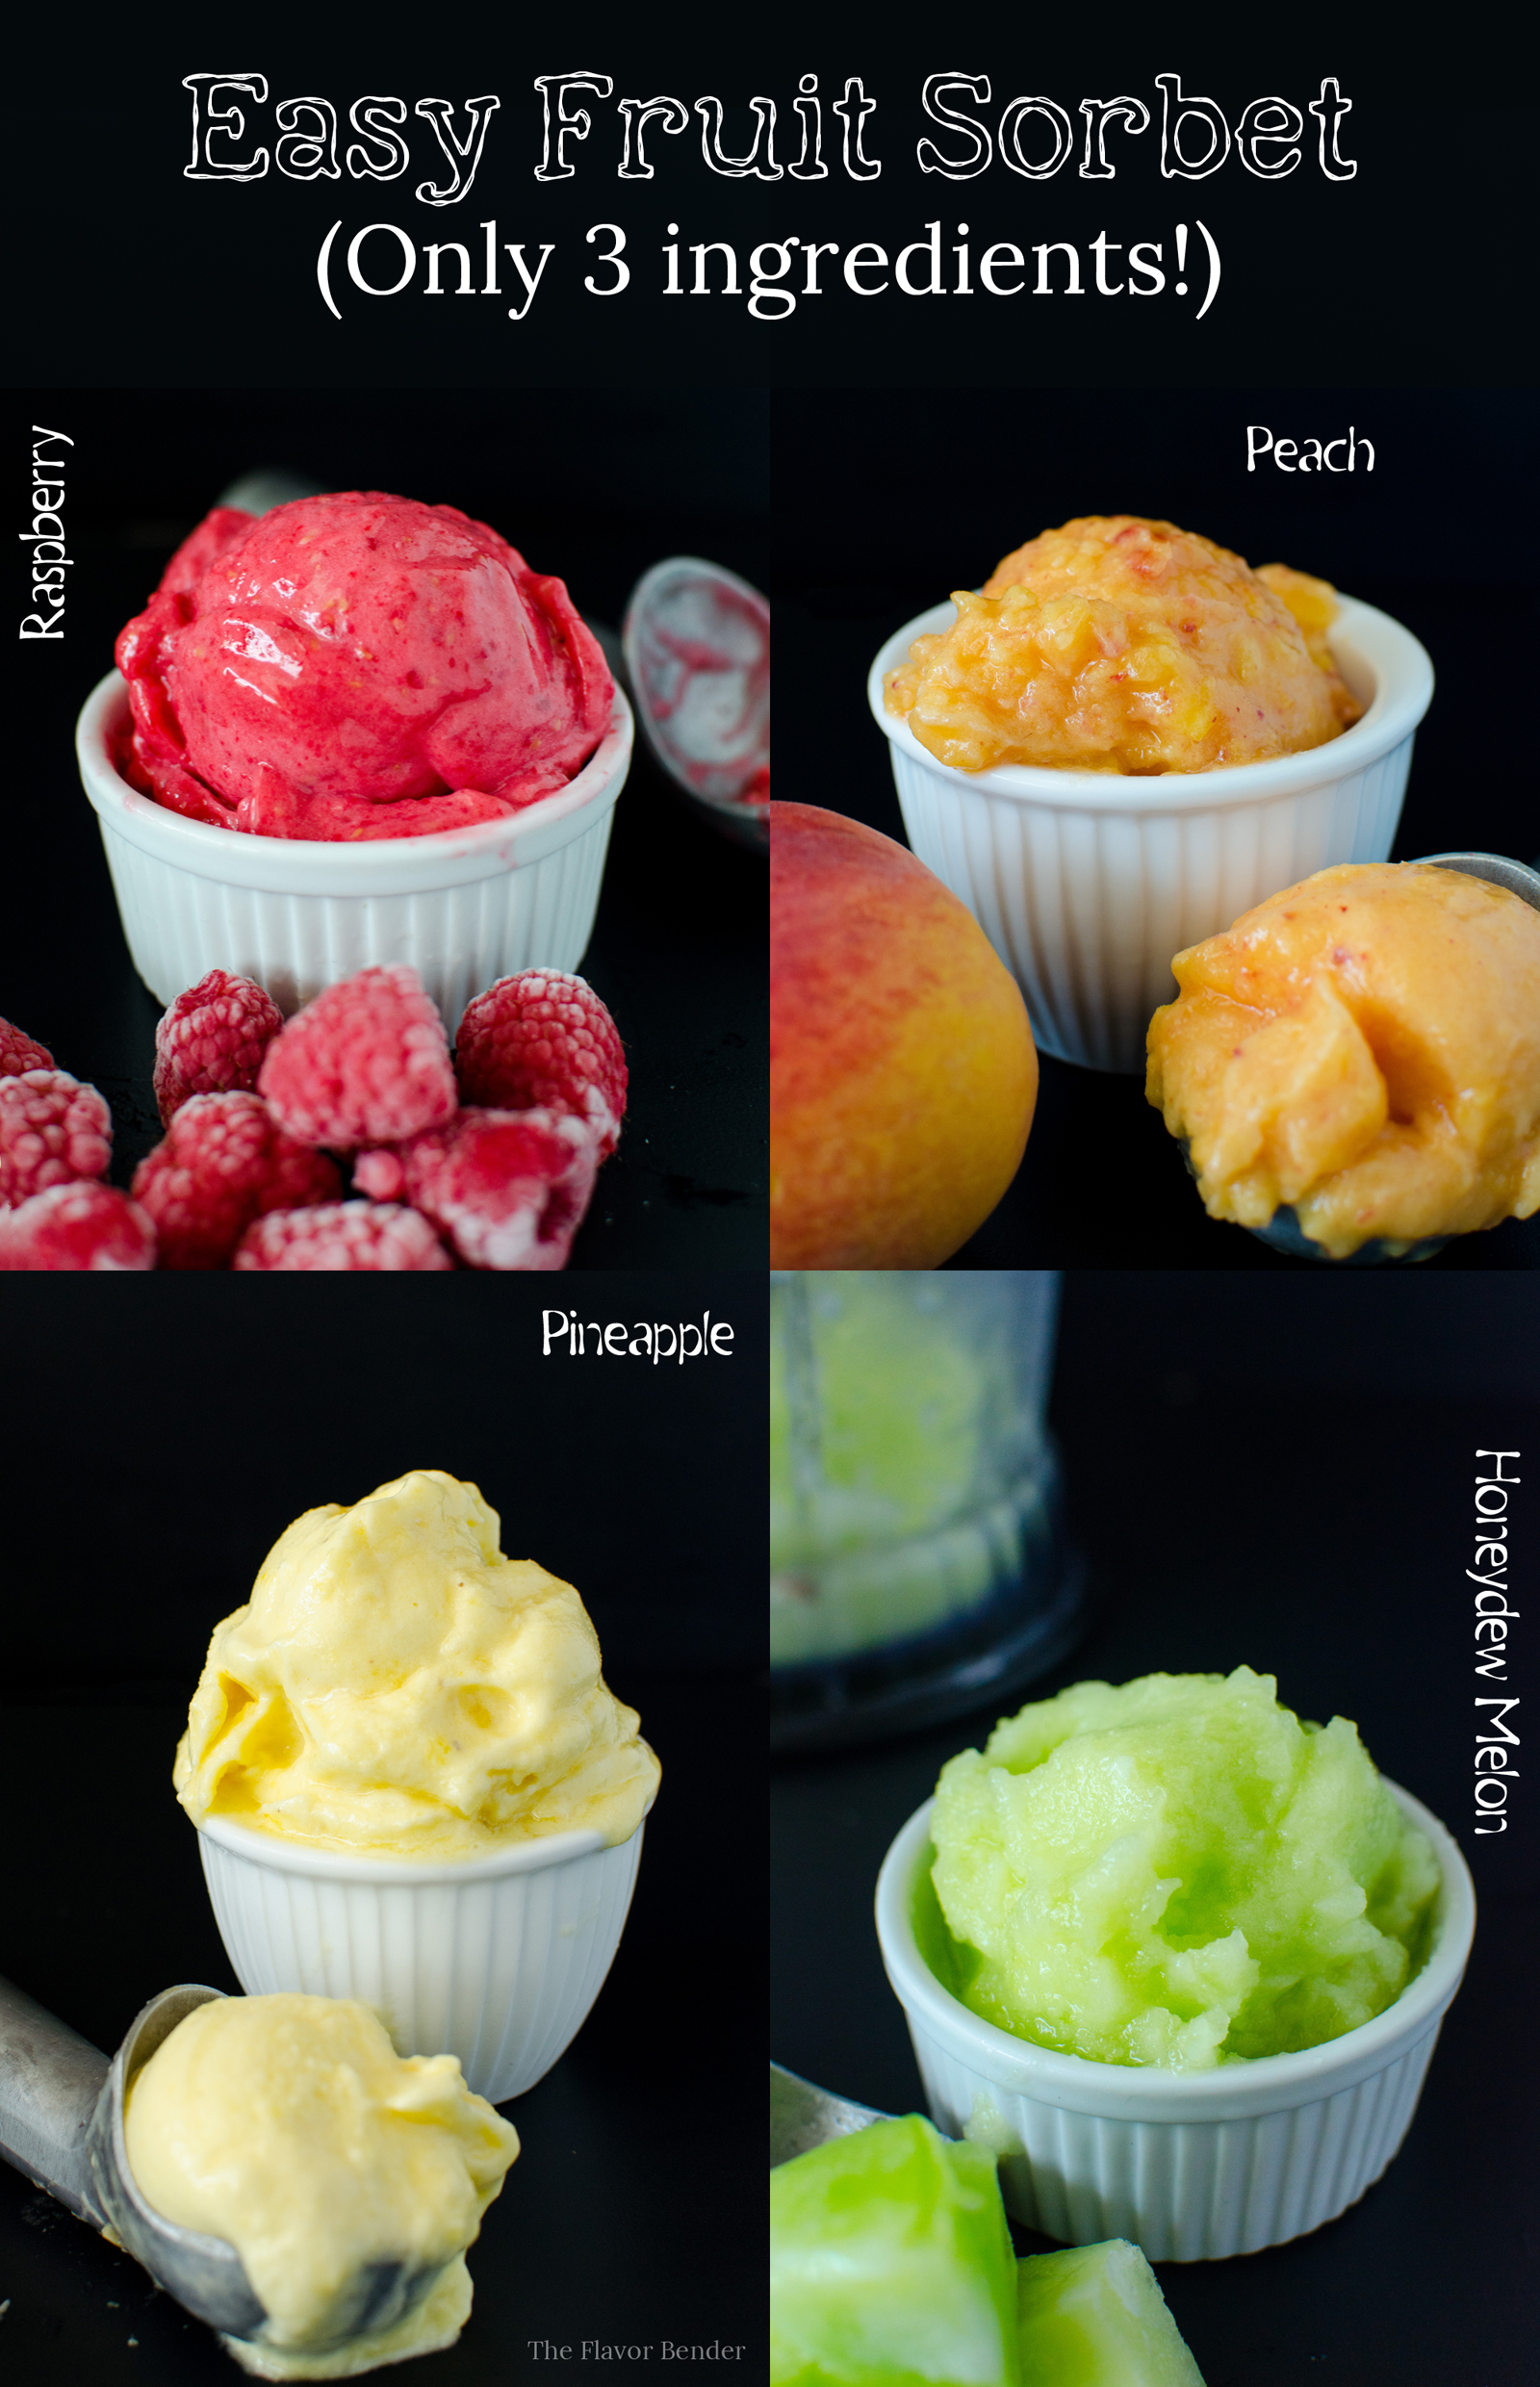 Easy Fruit Sorbet (Only 3 ingredients and so many flavors ...